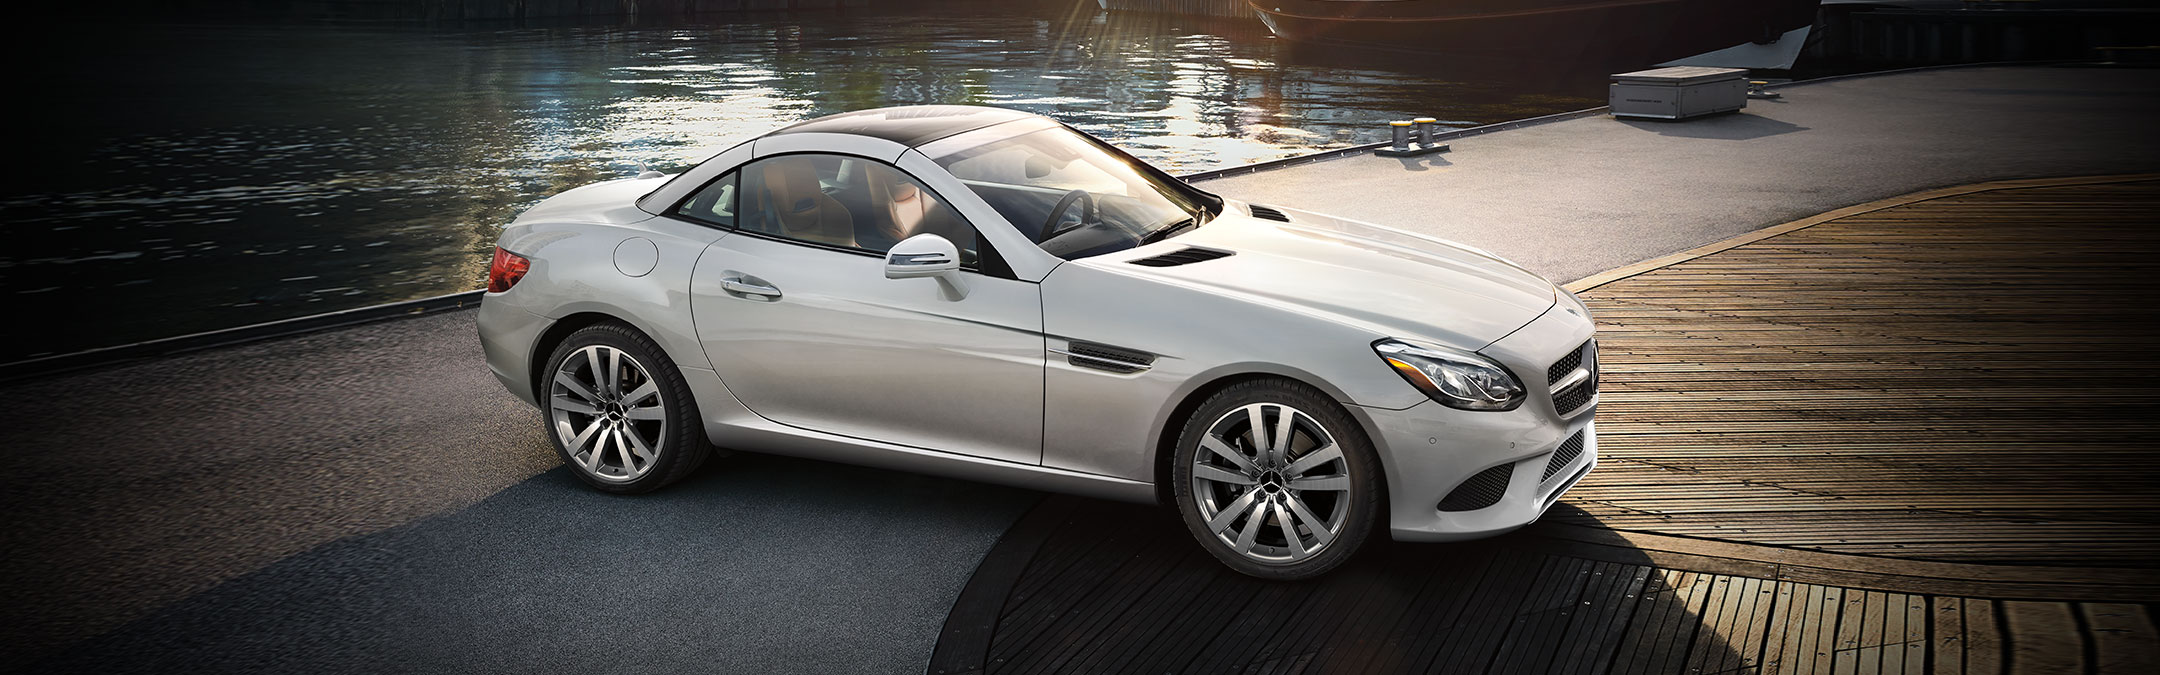 Design du Mercedes-AMG SLC 2018